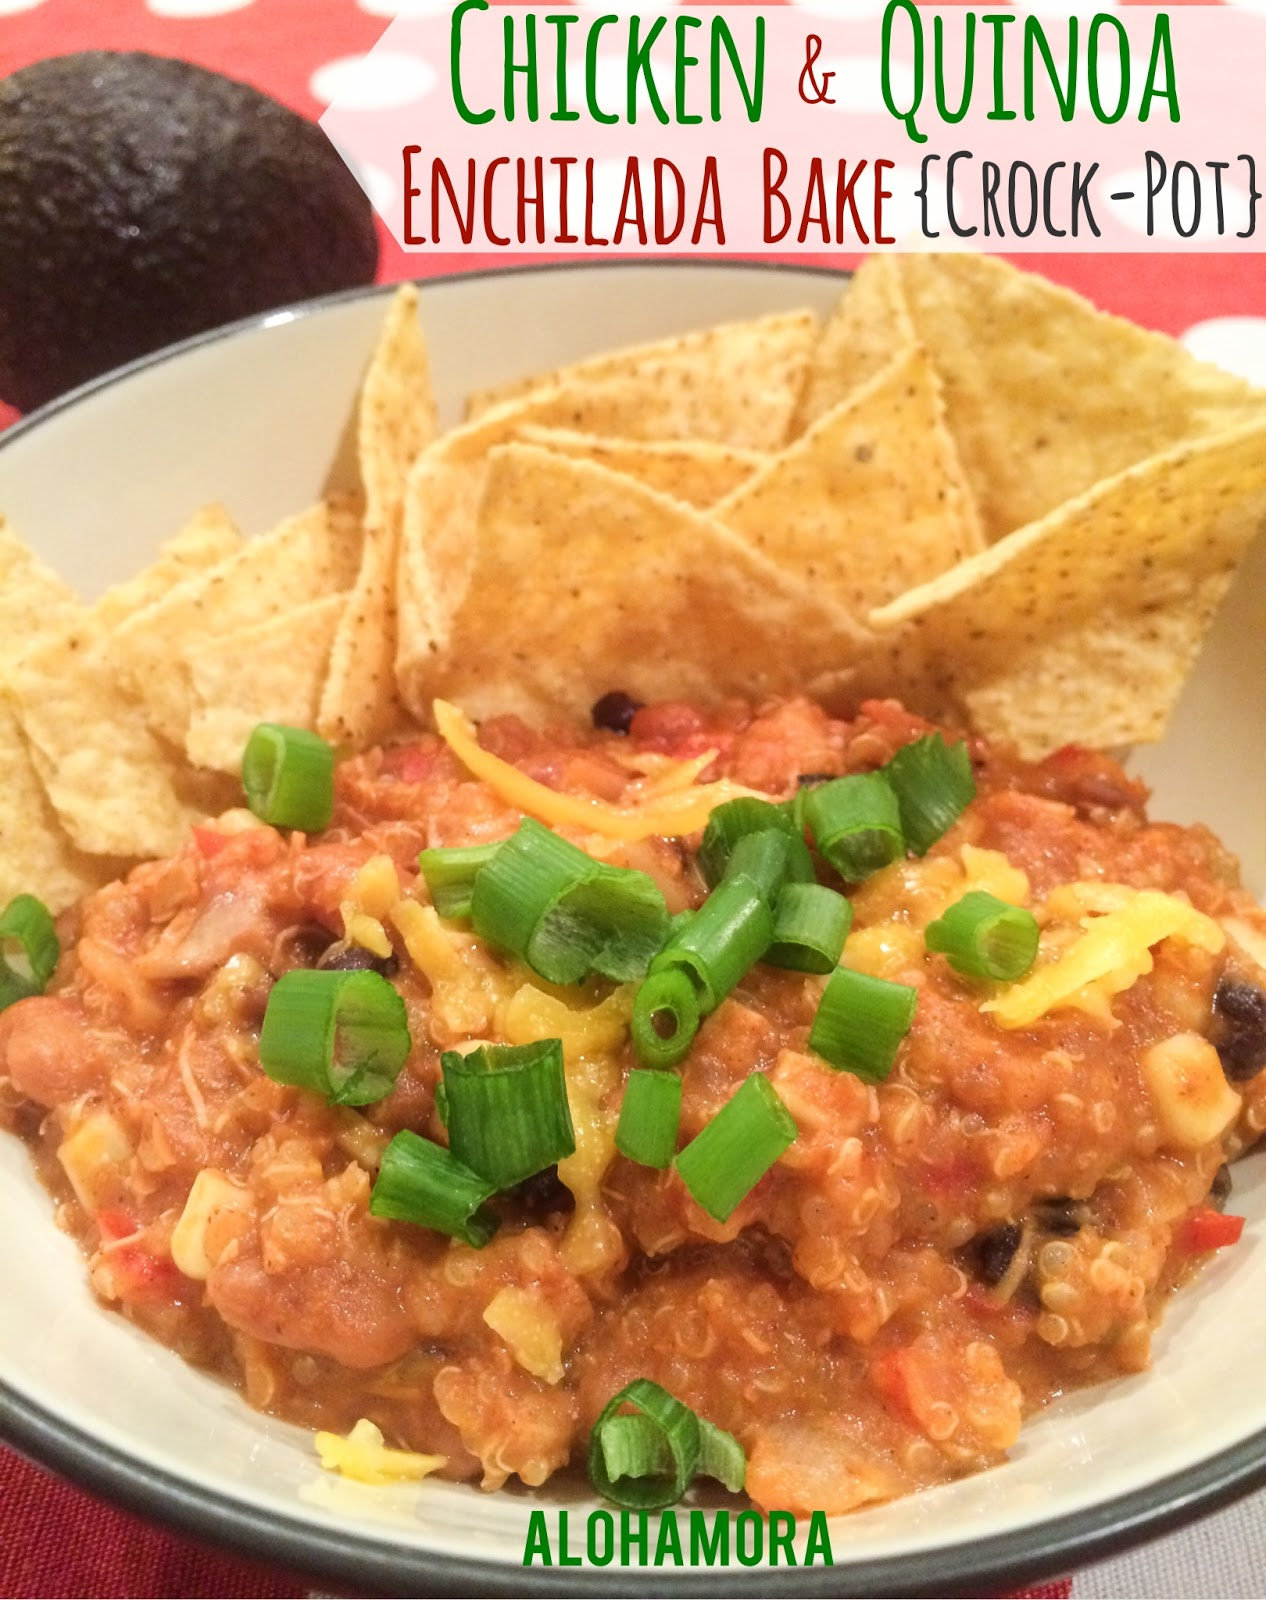 Chicken Quinoa Enchilada Bake easy to make dinner in your crock-pot/slow-cooker that's filling, flavorful, kid friendly, and delicious! Toss everything in your crock-pot in less than 30 minutes. Delicious! Alohamora Open a Book http://www.alohamoraopenabook.blogspot.com/